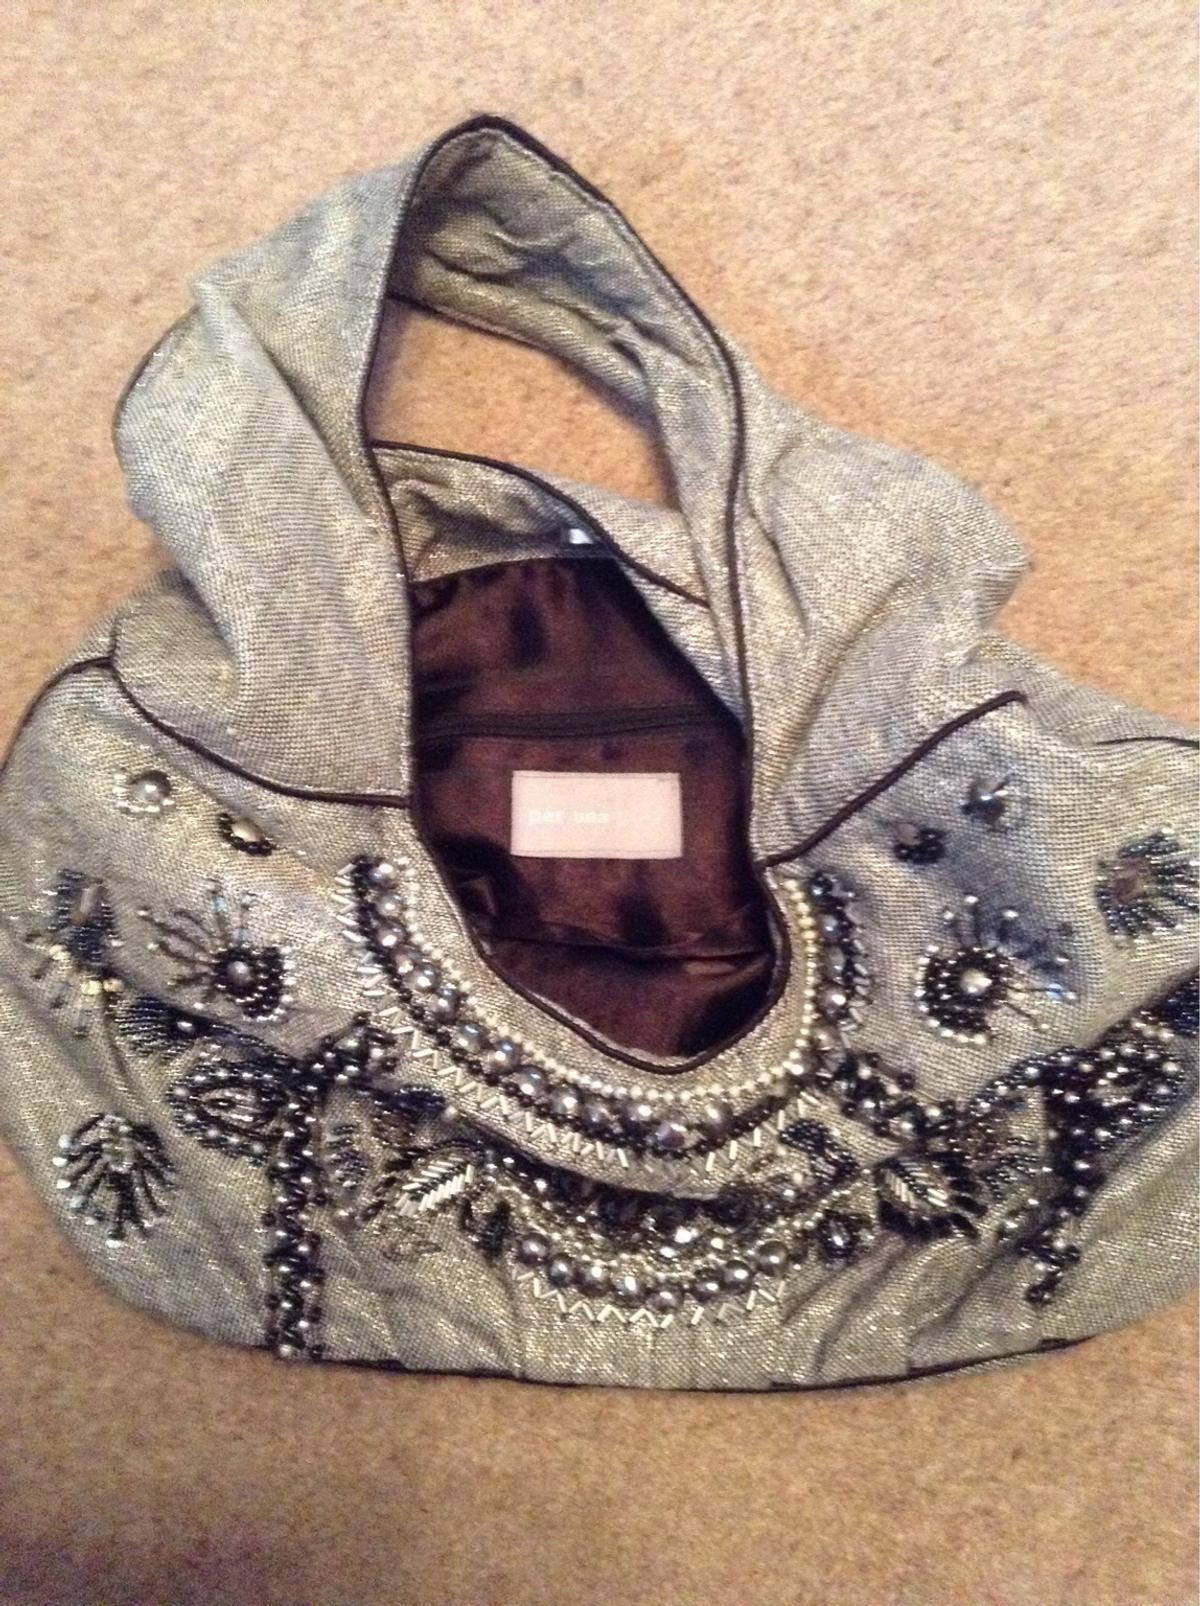 A lovely black and silver jewelled bag, made by Per Una. Used only a couple of times. Cash on collection.